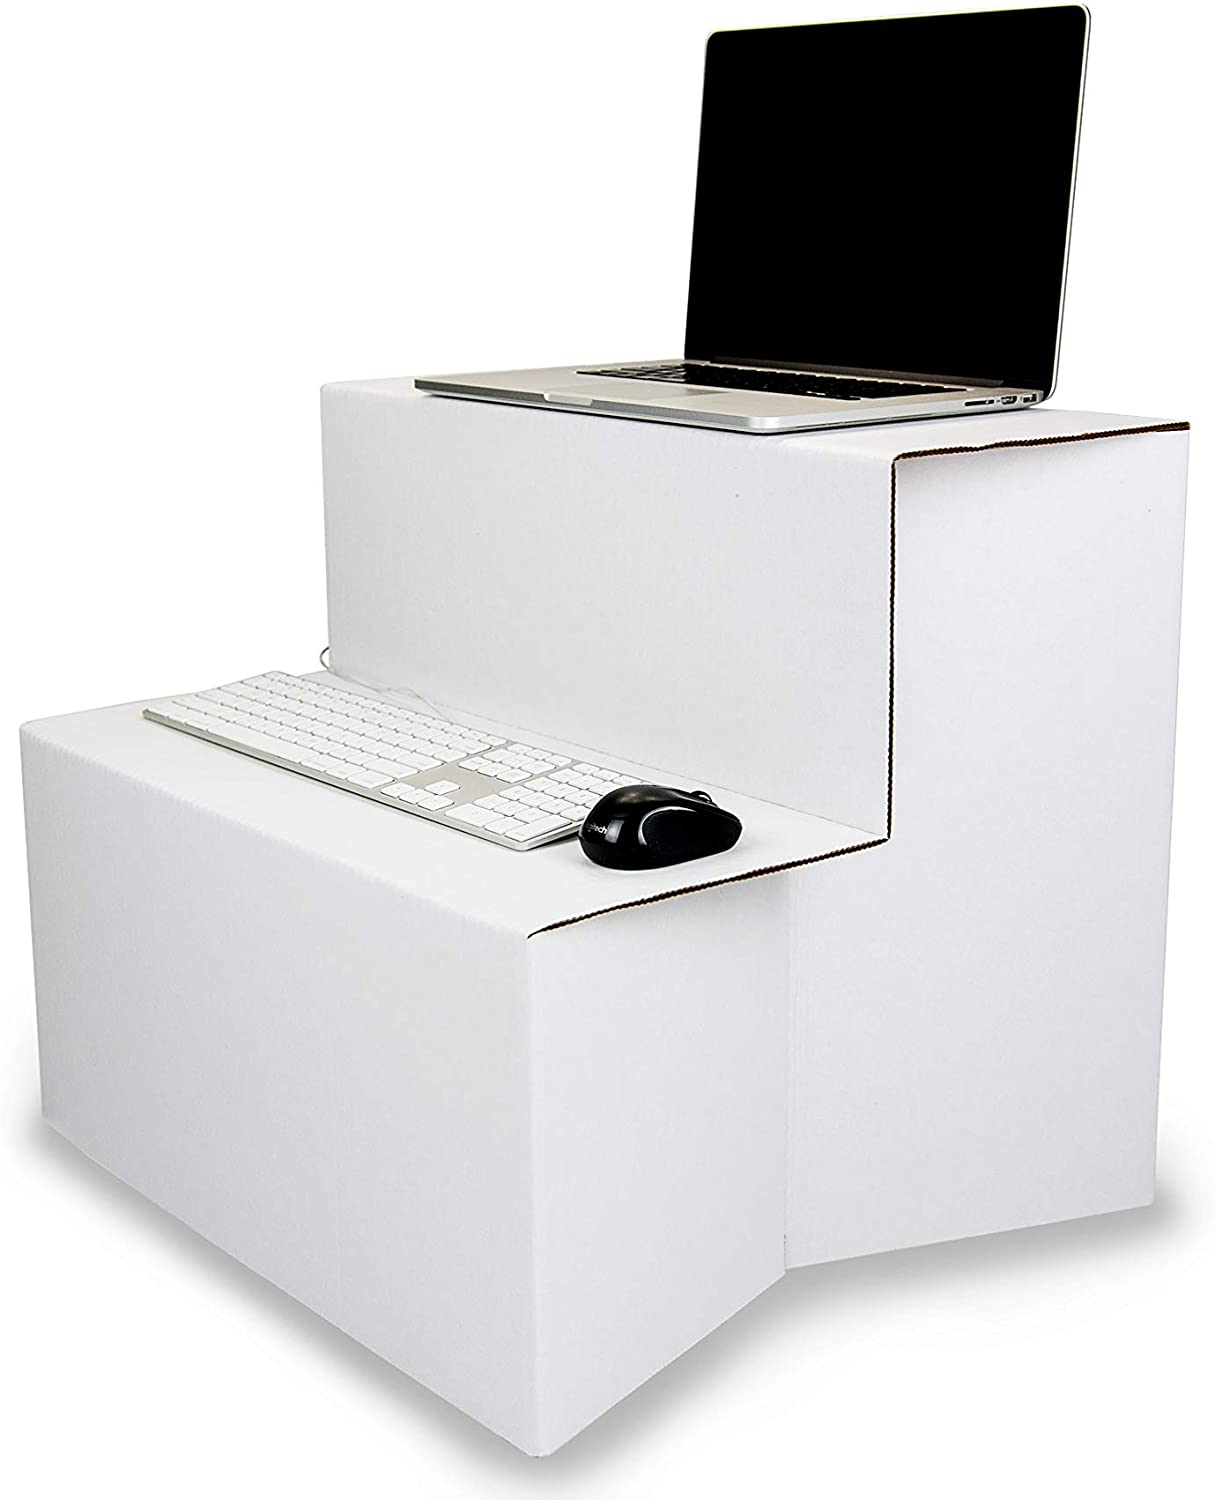 Portable Fold-Flat Standing Desk Congreener & Sit Stand Workstation by Ghostand